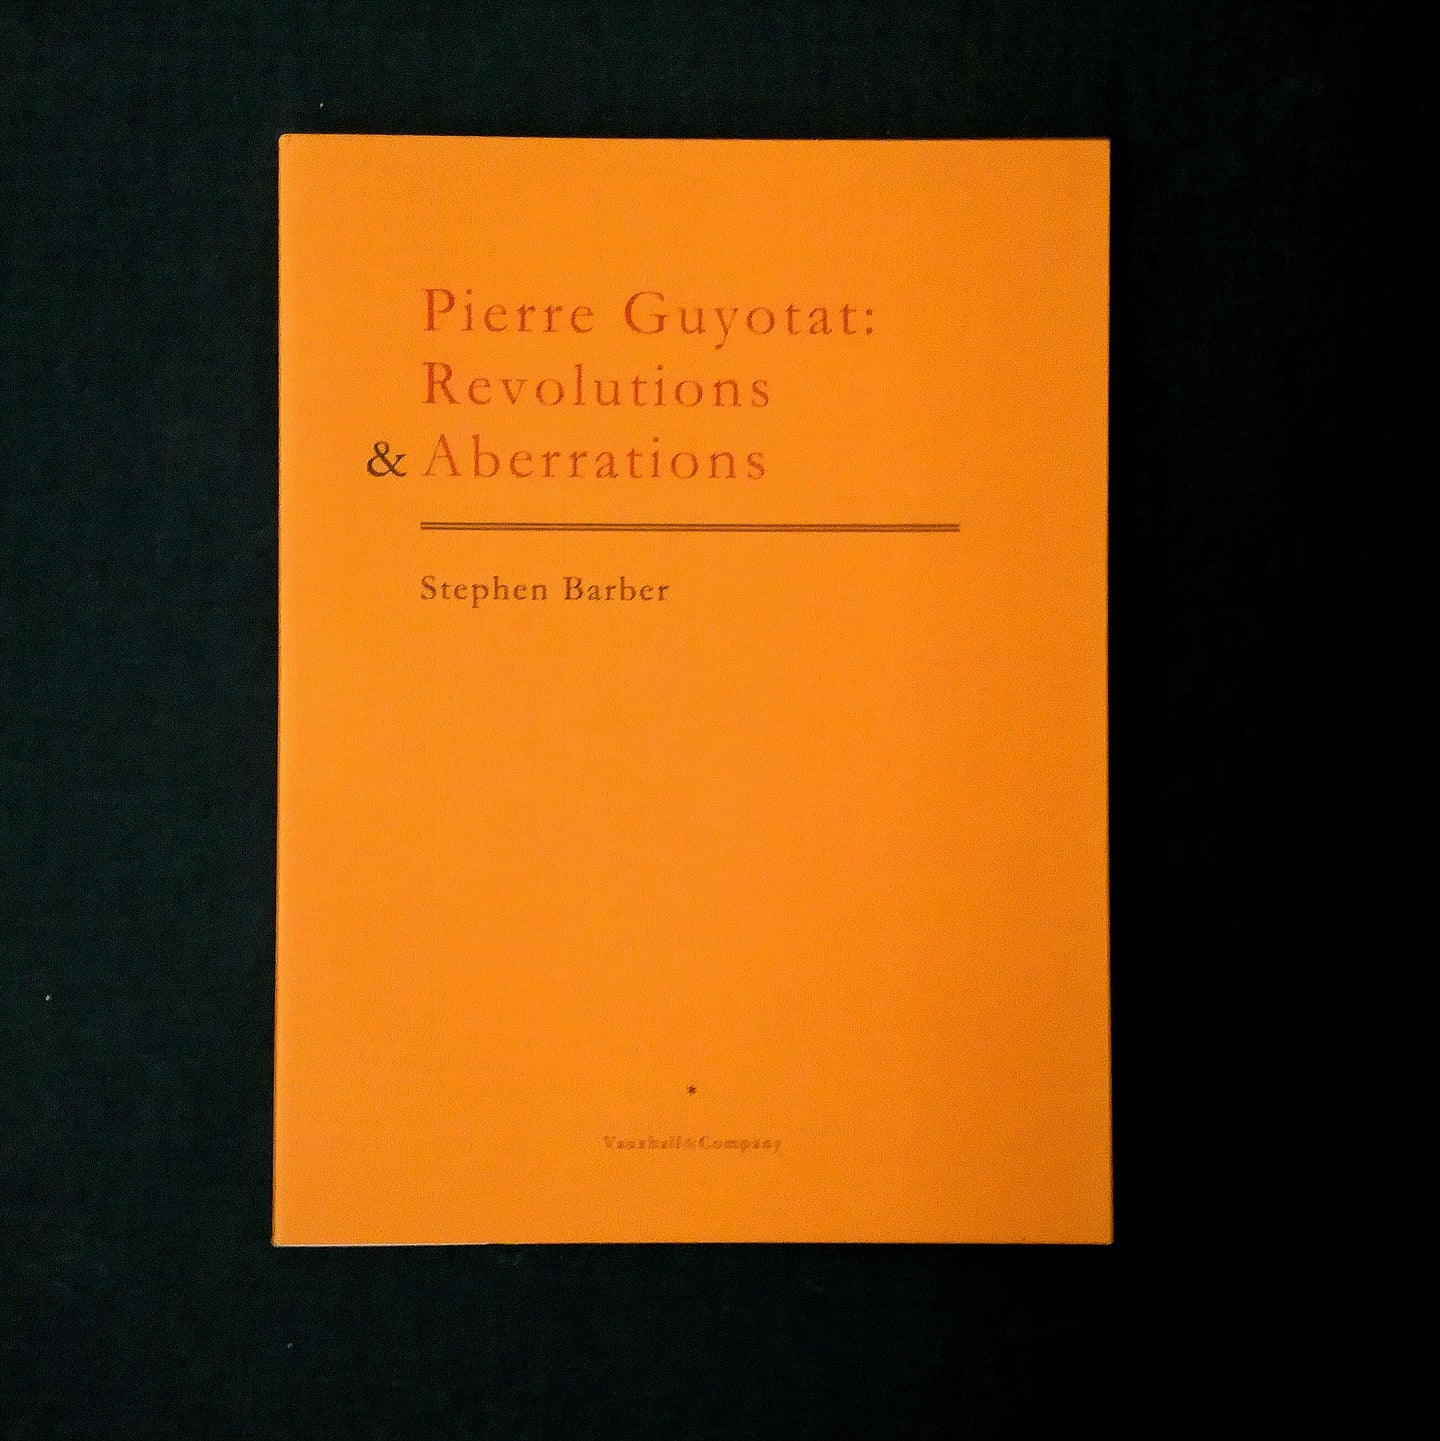 Stephen Barber: Pierre Guyotat: Revolutions & Aberrations